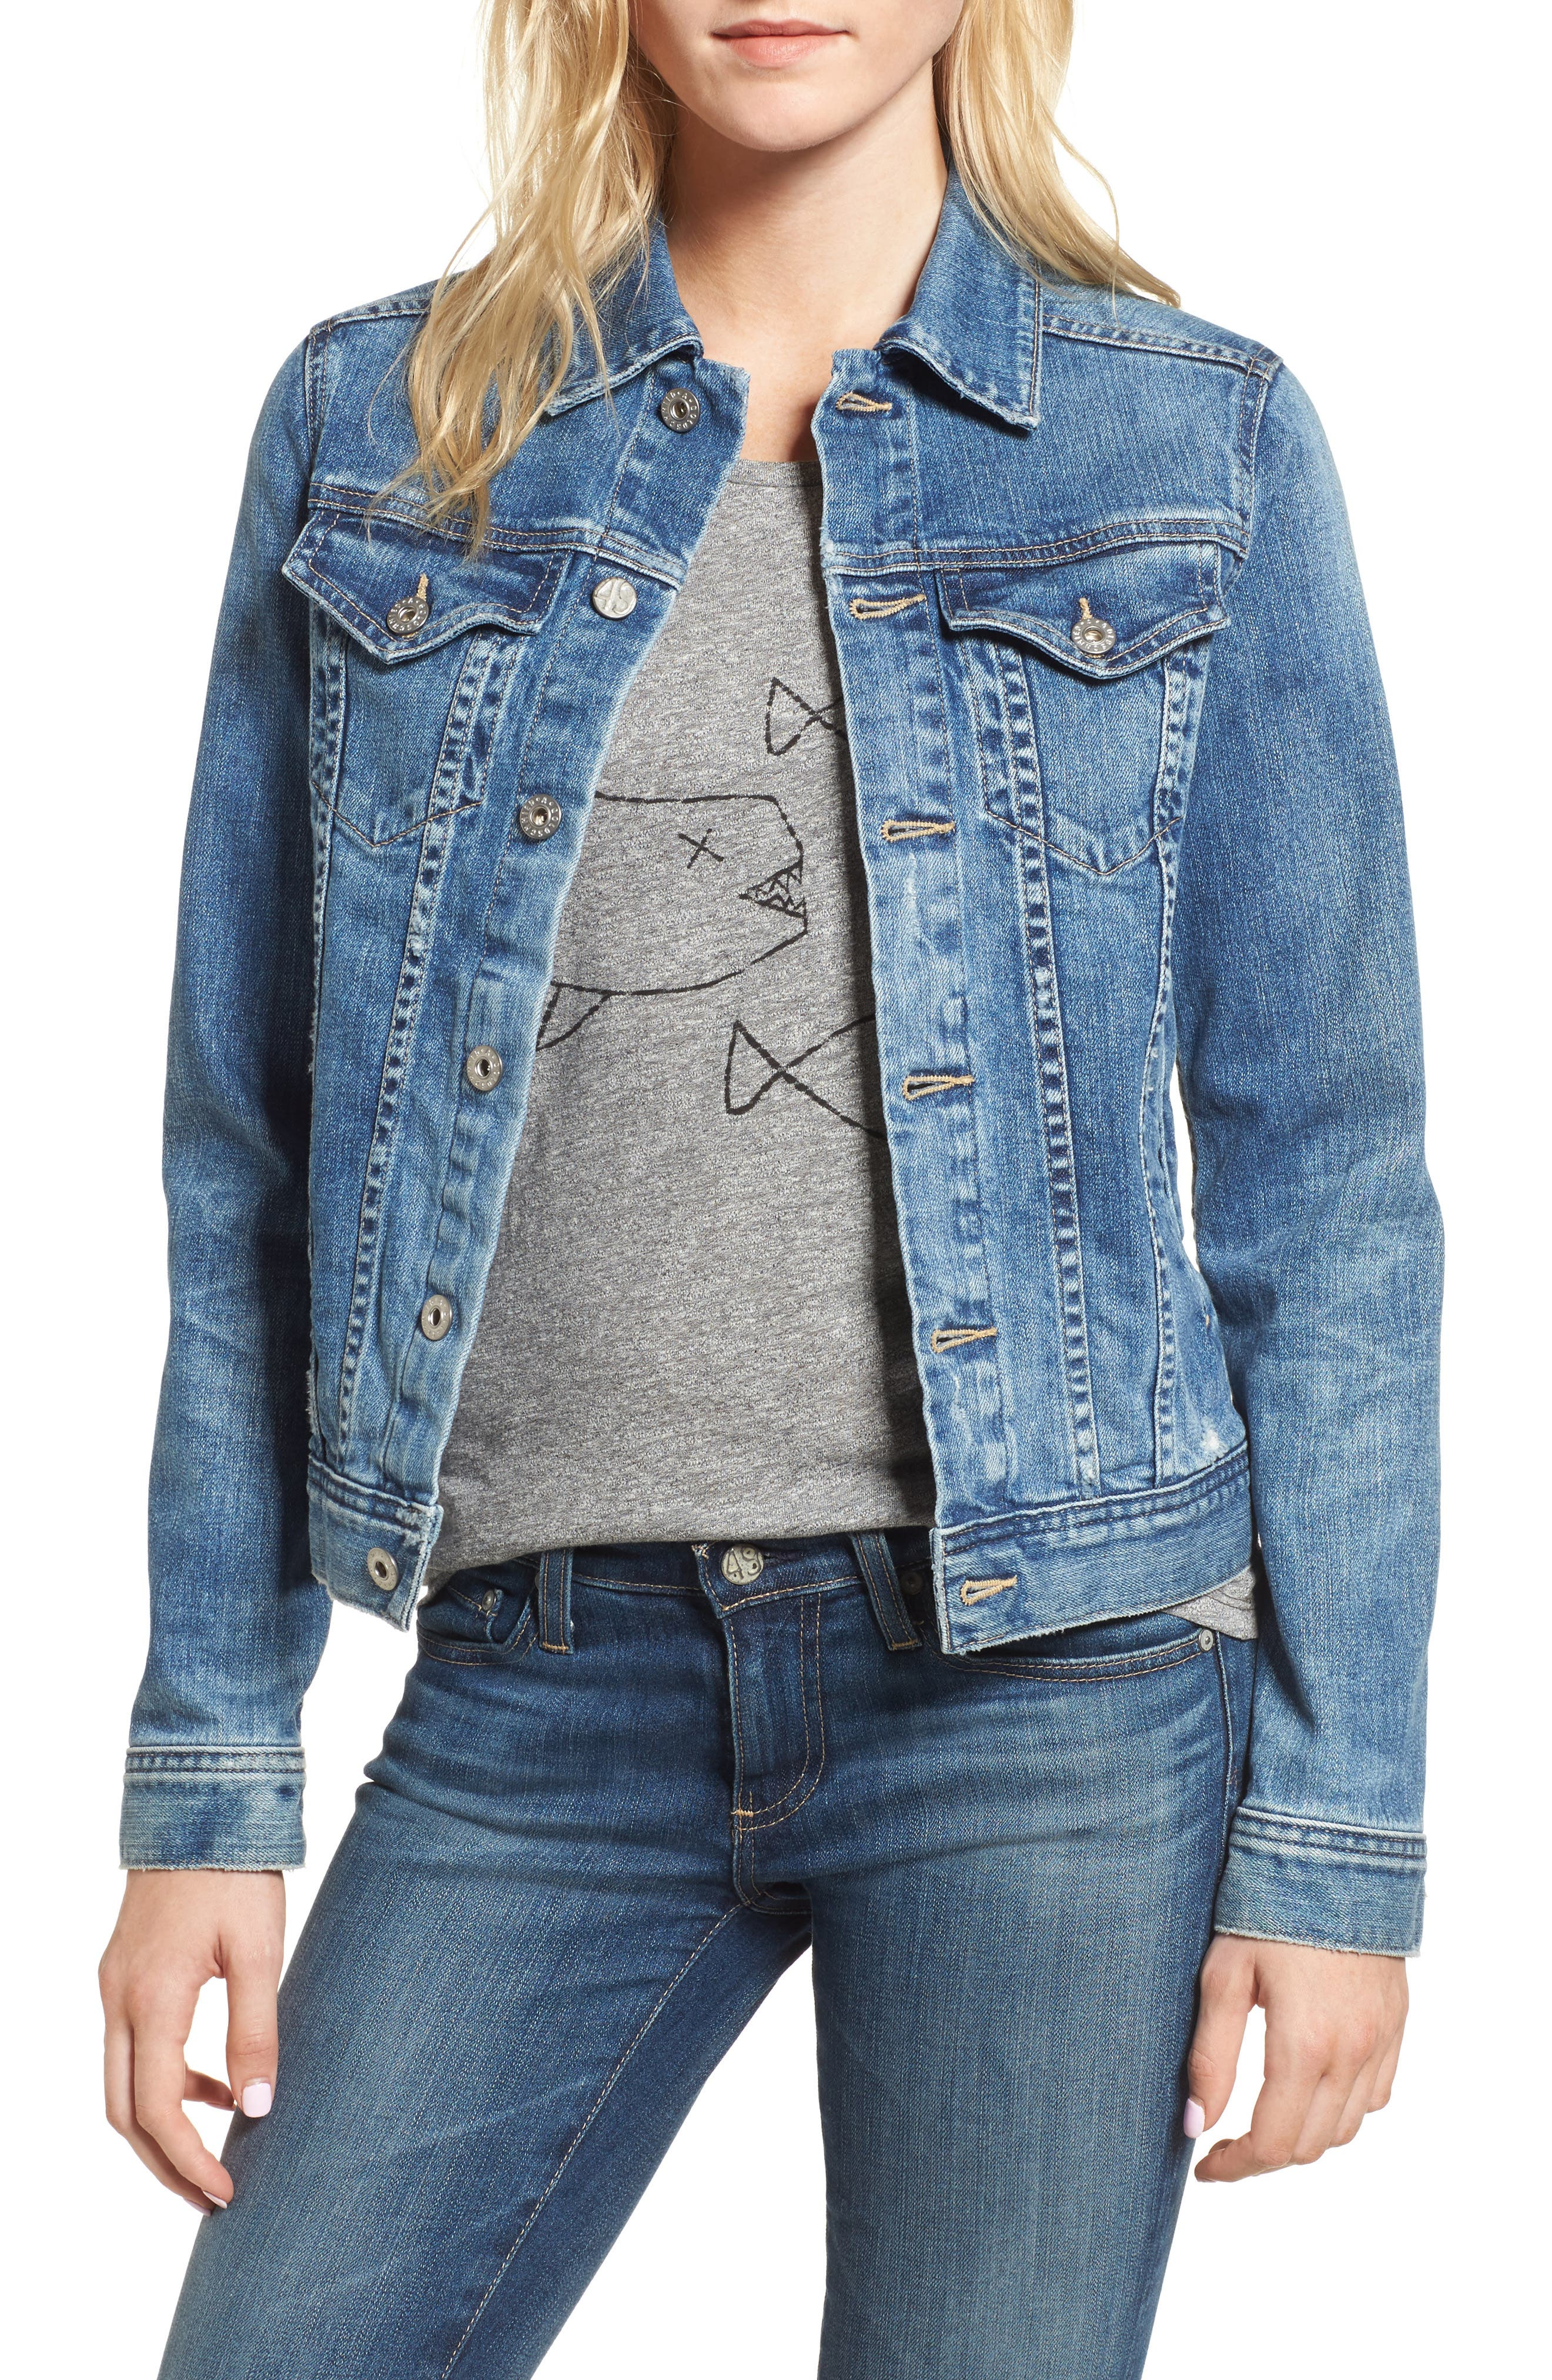 'Mya' Denim Jacket,                             Main thumbnail 1, color,                             10 YEARS MAGNETIC BLUE